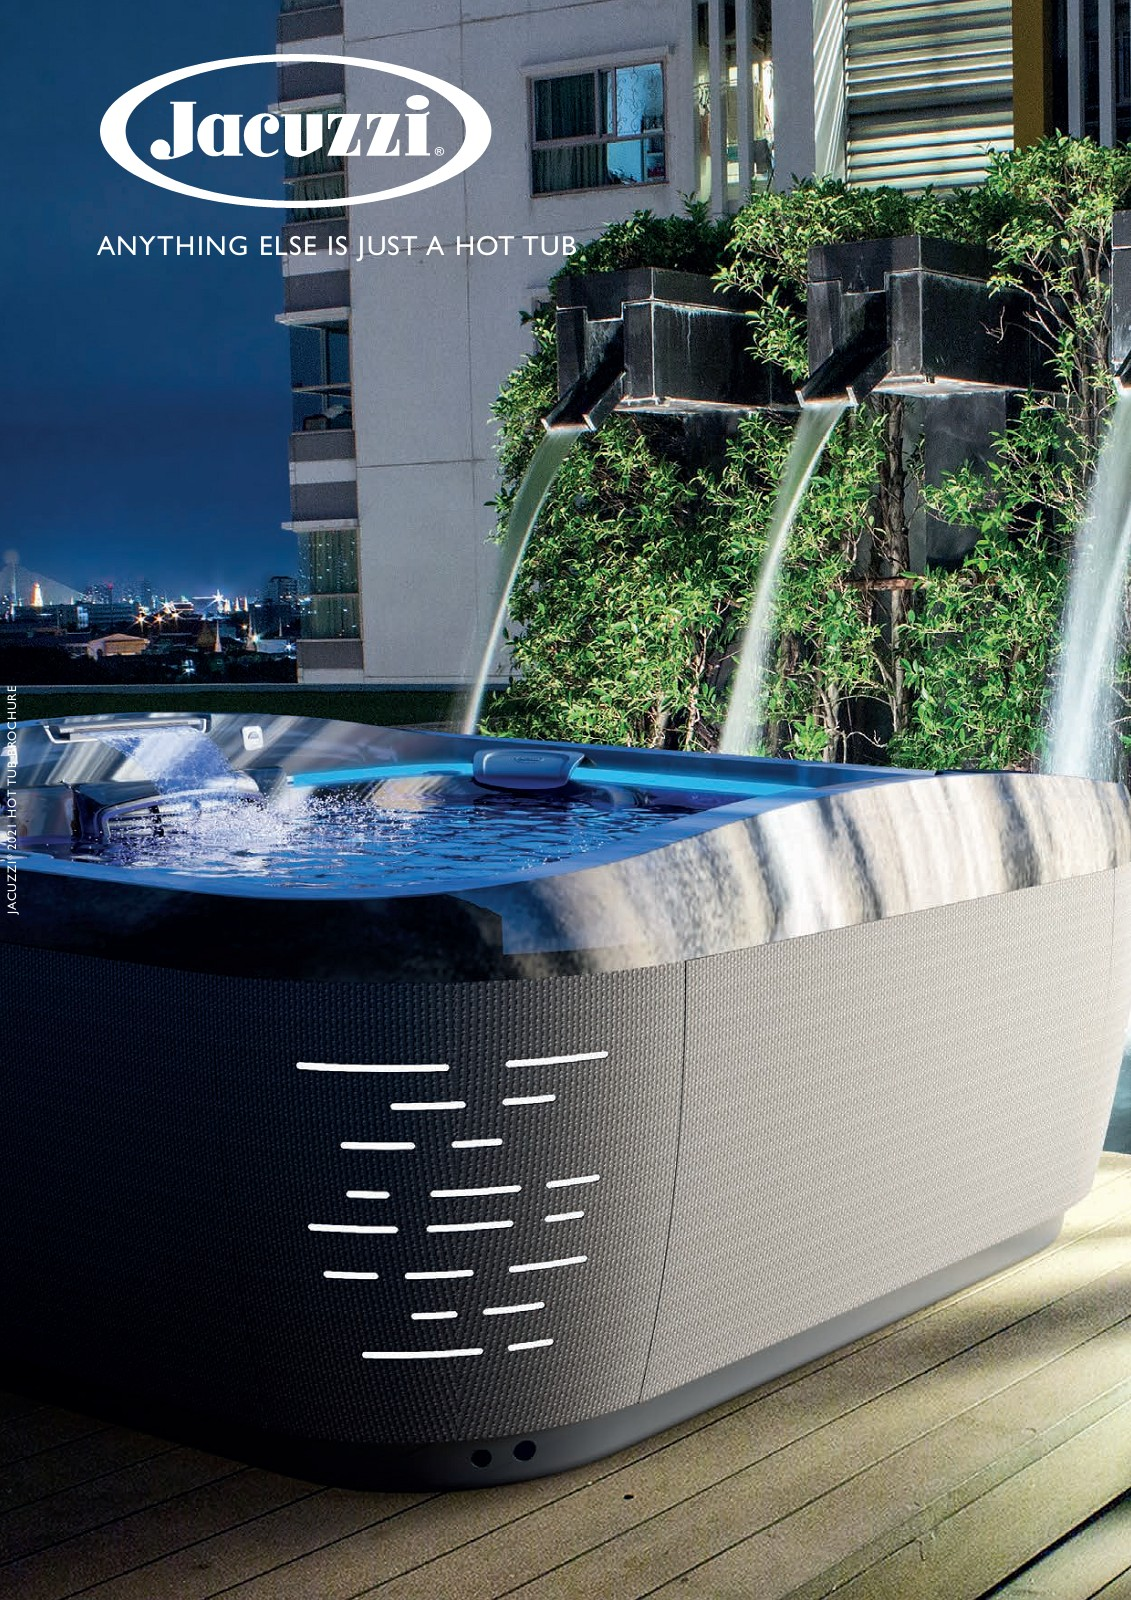 Jacuzzi Brochure - Intro To The World-Leading Hot Tub Brand